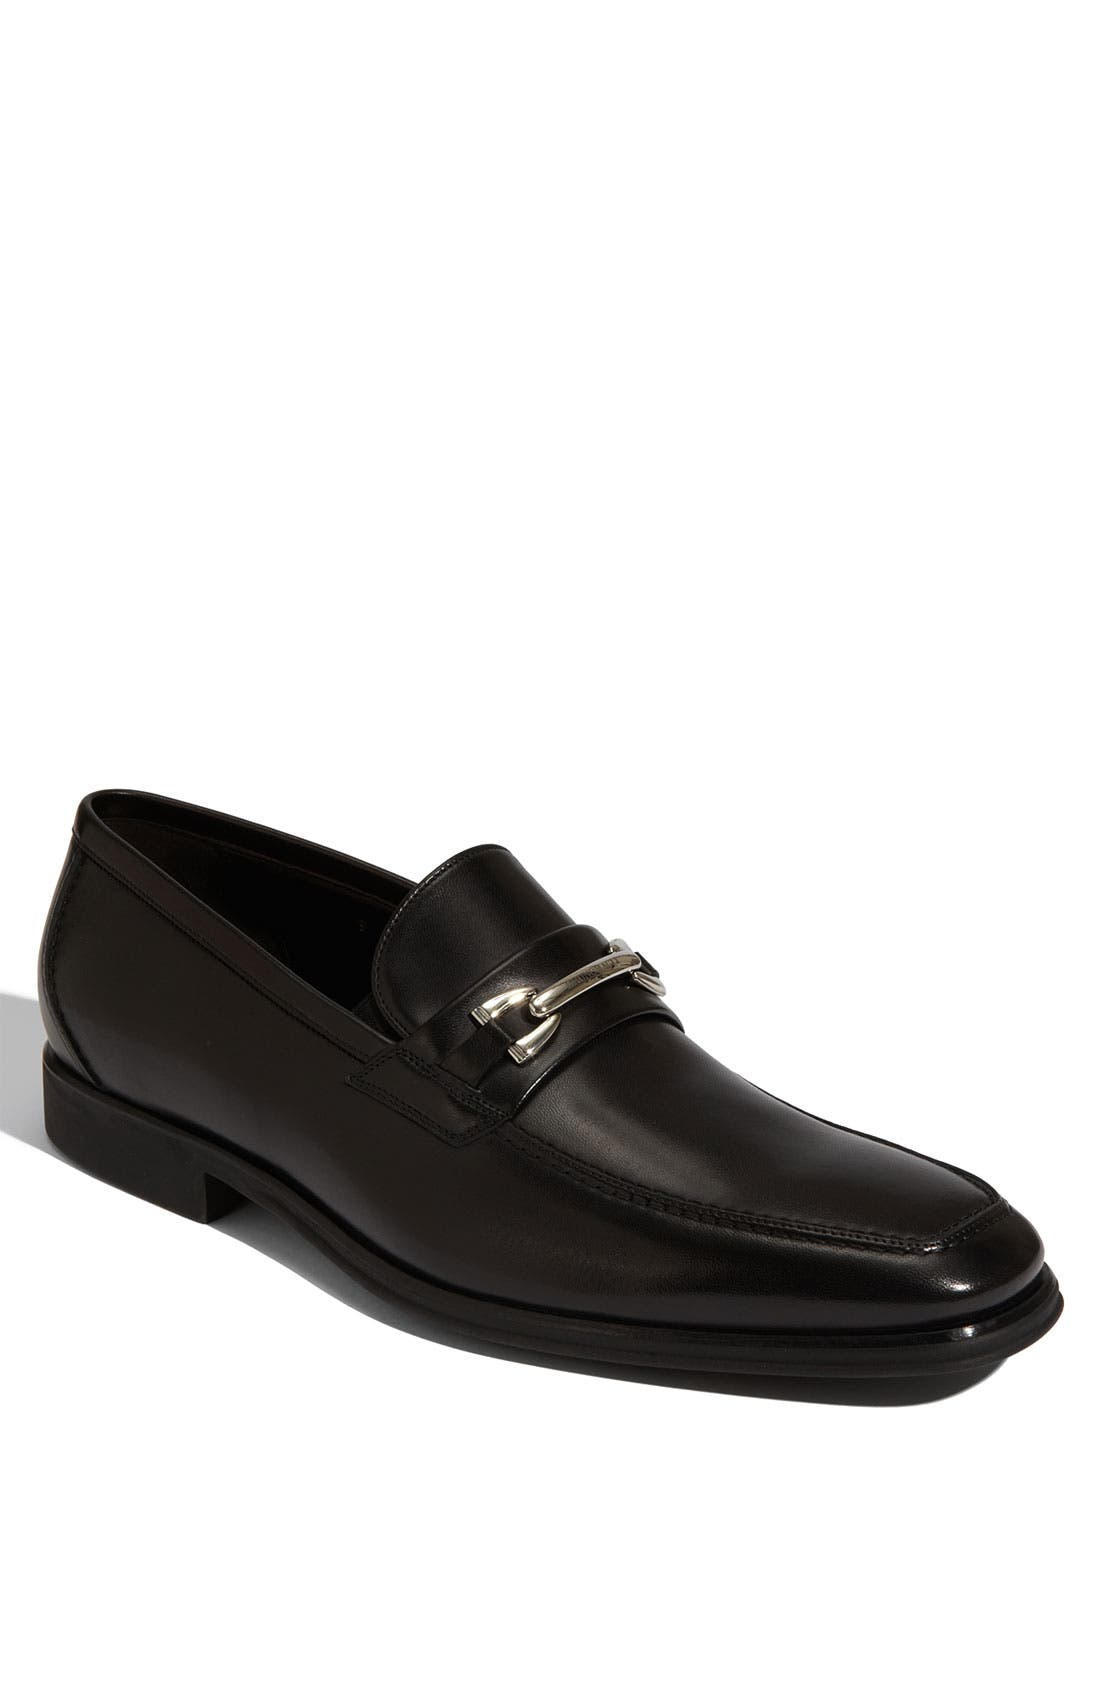 'Renegade' Loafer,                             Main thumbnail 1, color,                             001